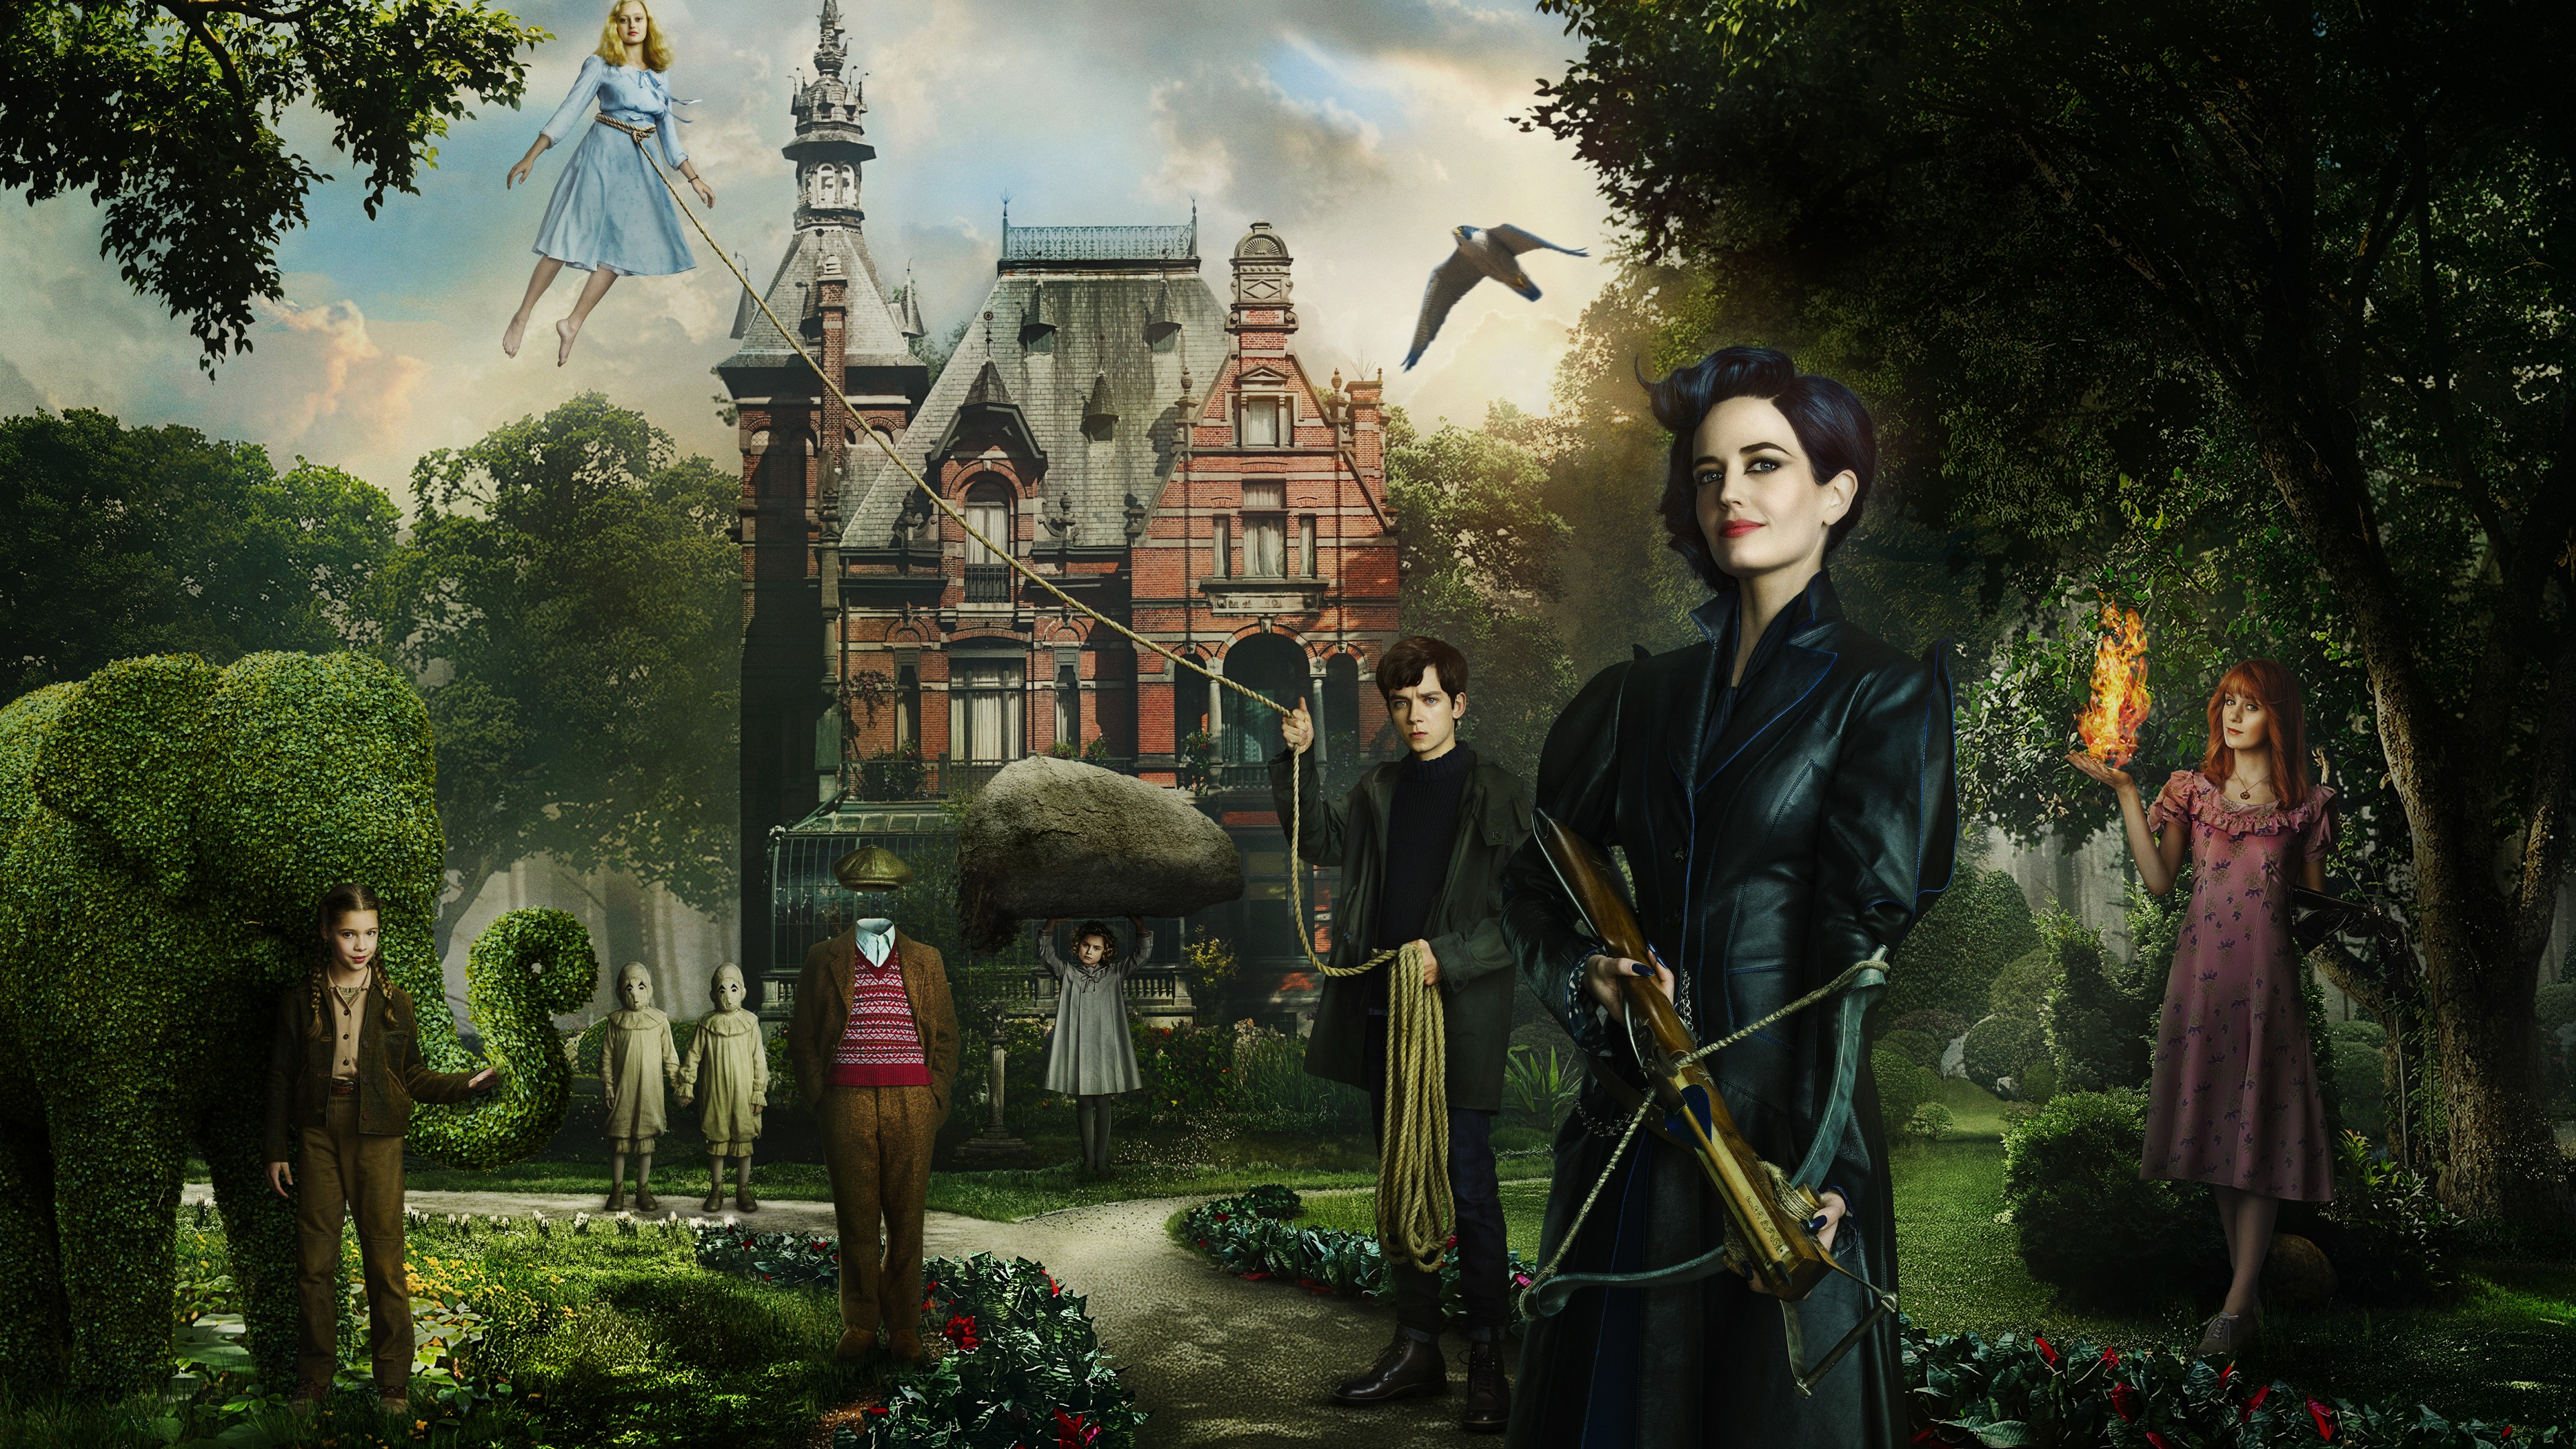 miss peregrines home for peculiar children 4k 1536399796 - Miss Peregrines Home for Peculiar Children 4k - movies wallpapers, miss peregrines home for peculiar children wallpapers, 4k-wallpapers, 2016 movies wallpapers